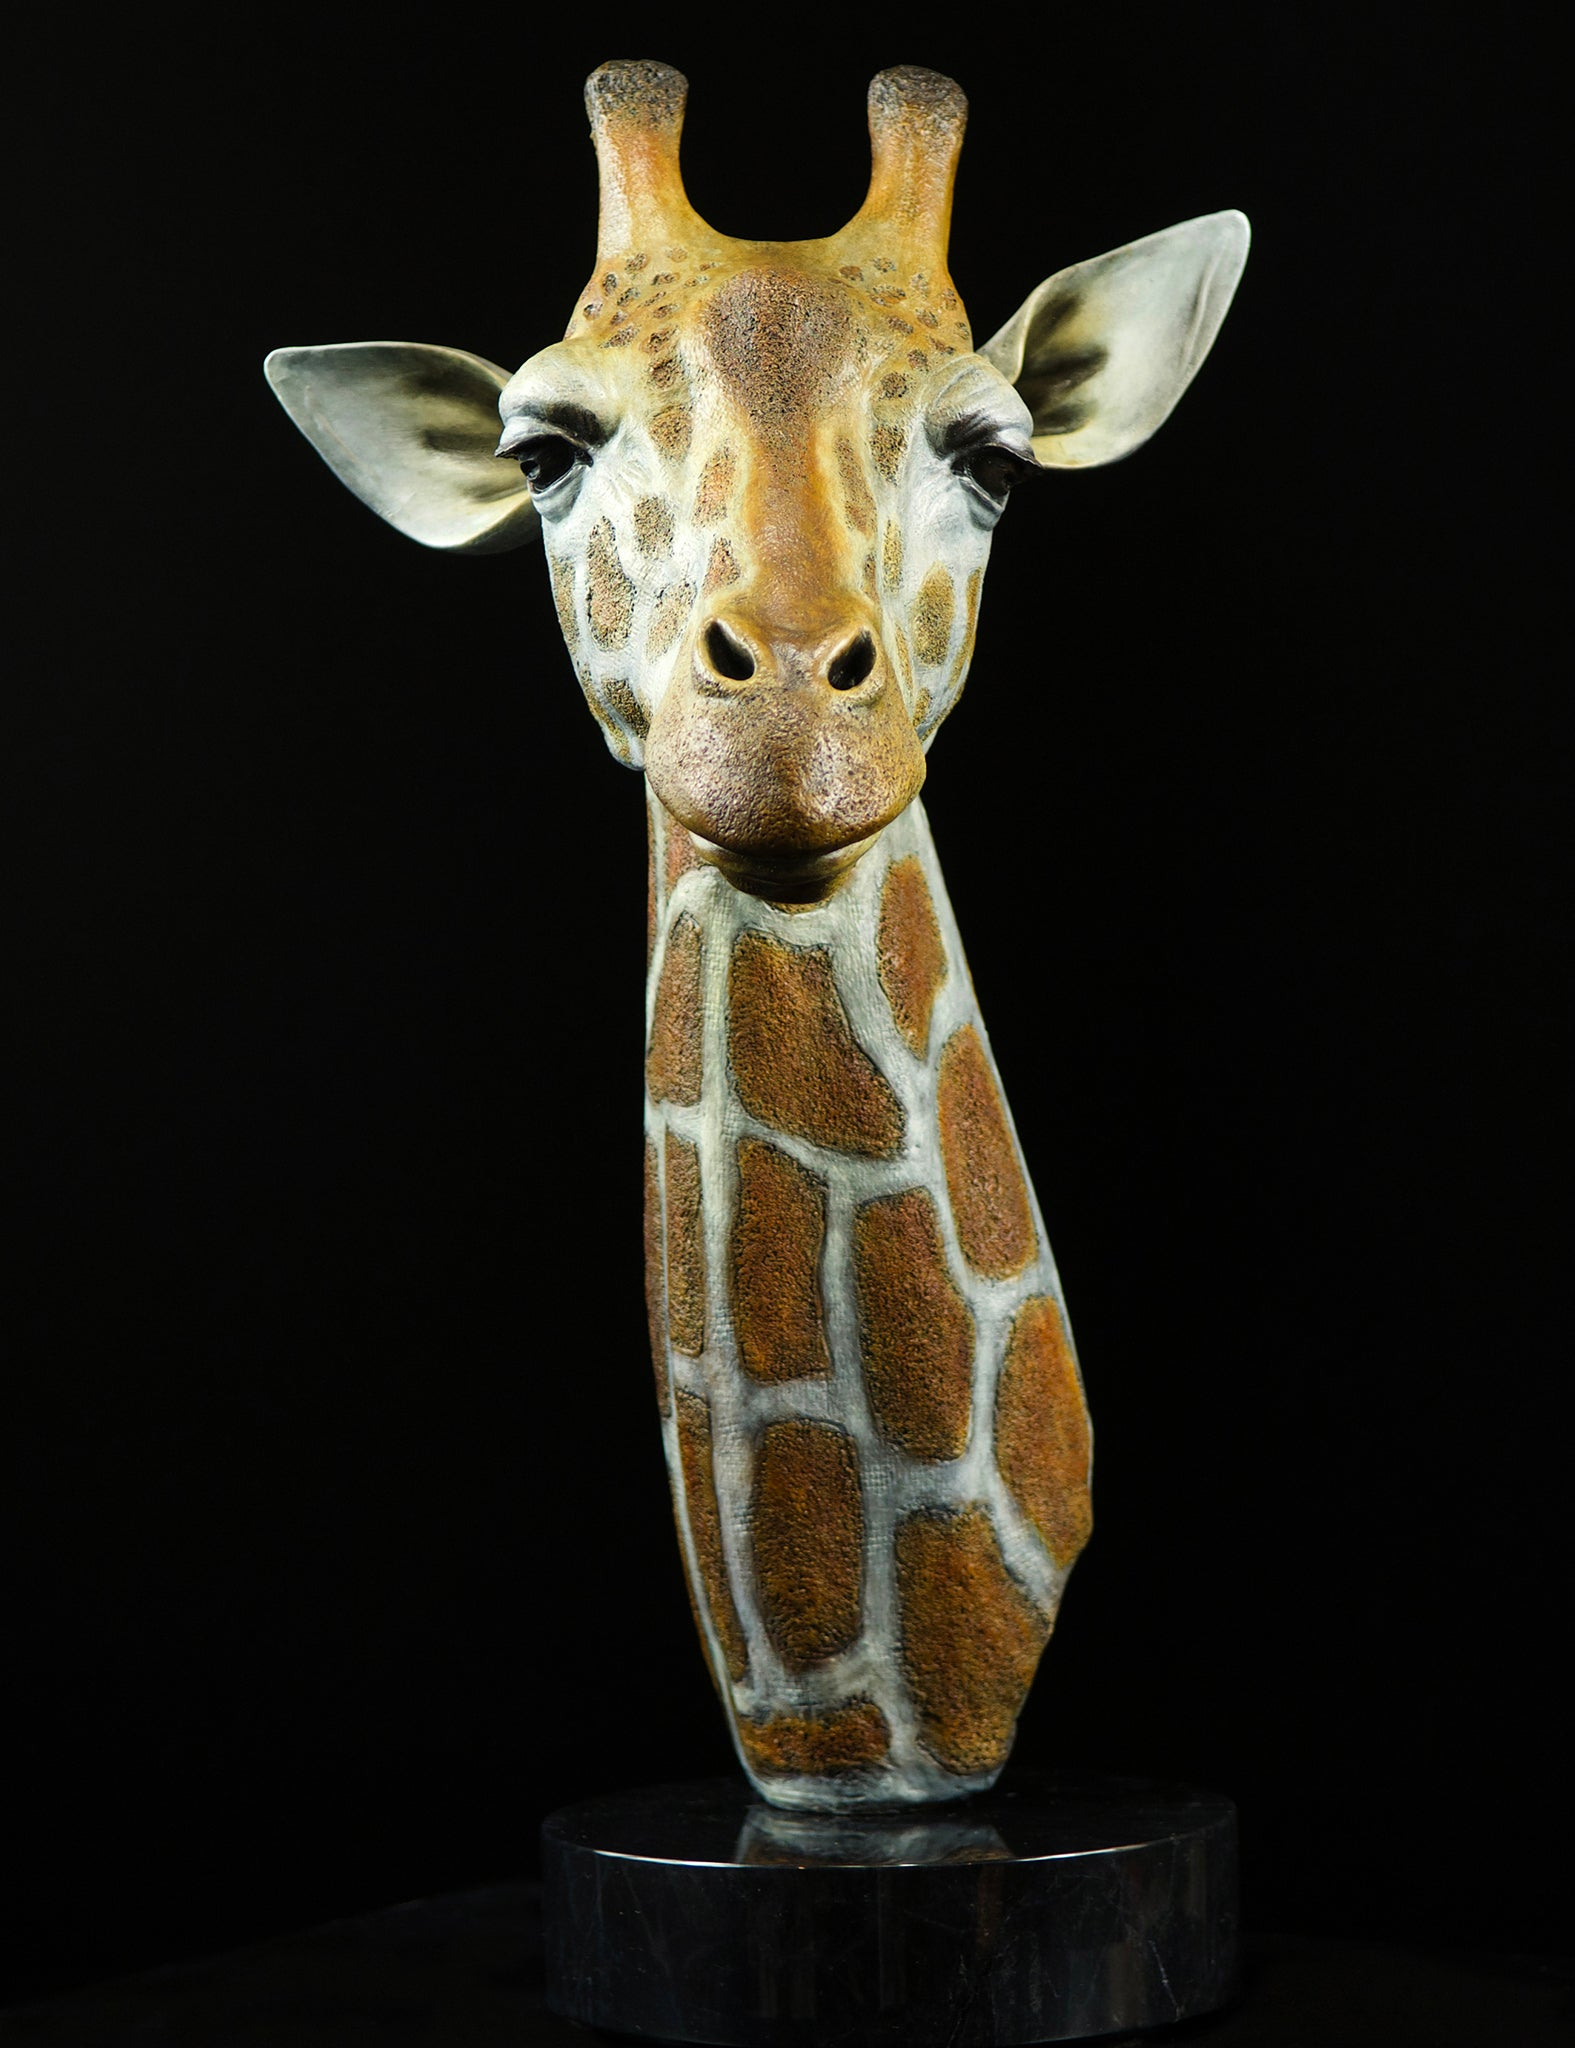 Pandemic Giraffe Limited Edition Bronze